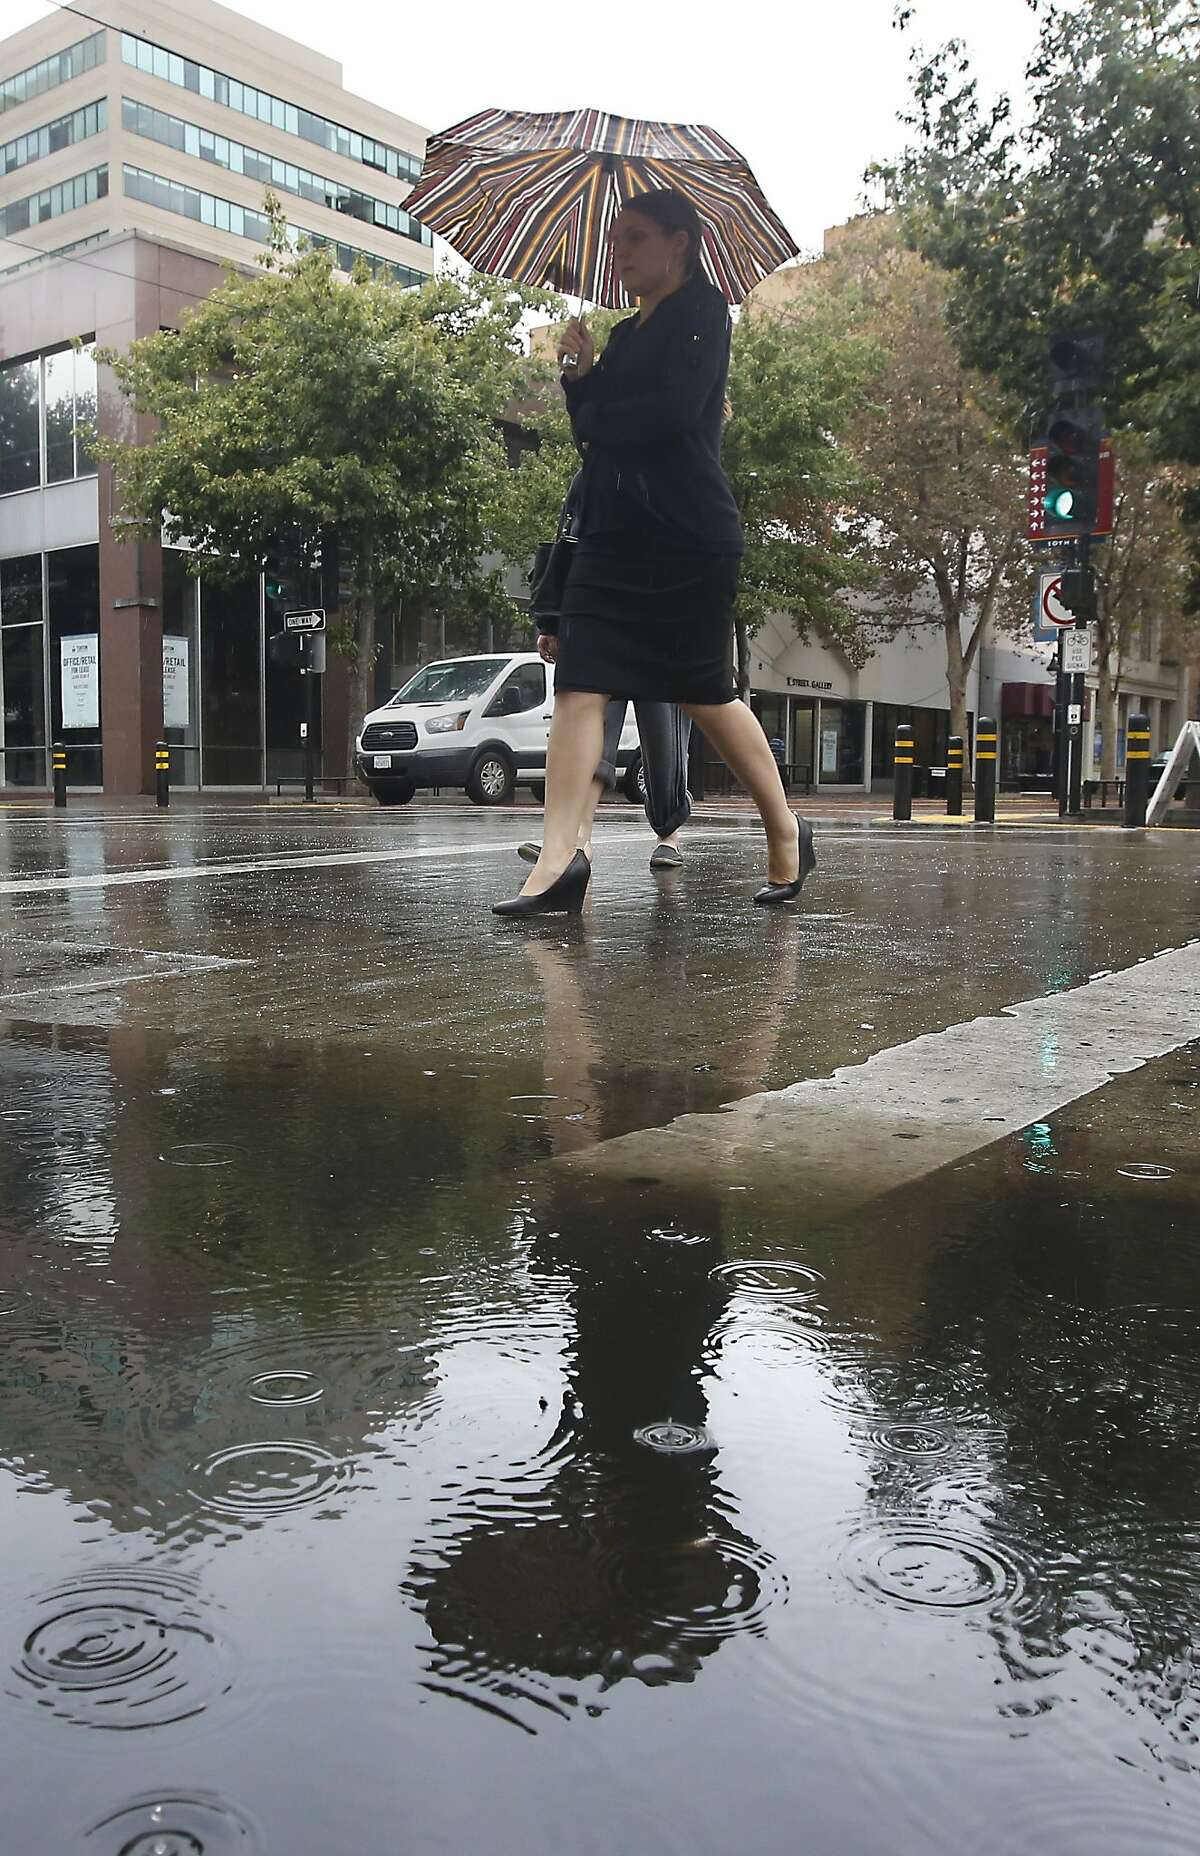 An umbrella is reflected in the pool of rain water on 10th St. in downtown, Sacramento, Calif., Wednesday, Sept. 30, 2015. The brief rain fall, while welcome, brought little relief from California's four-year-old drought .(AP Photo/Rich Pedroncelli)